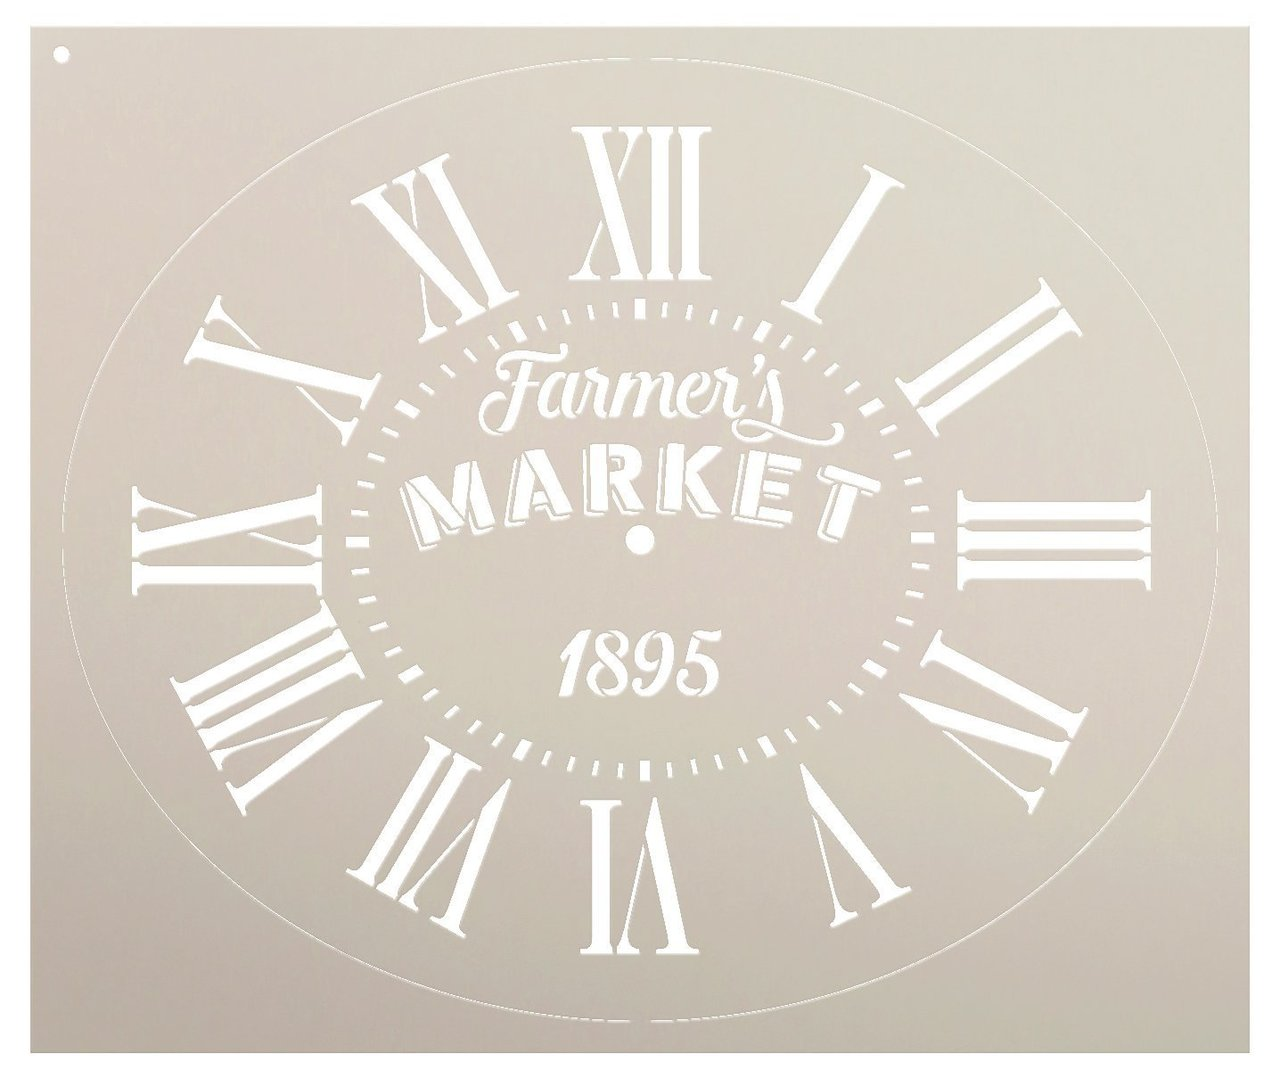 """Oval Clock Stencil w/Roman Numerals - Farmers Market Letters - DIY Painting Vintage Rustic Farmhouse Country Home Decor Walls - Select Size (20"""")"""